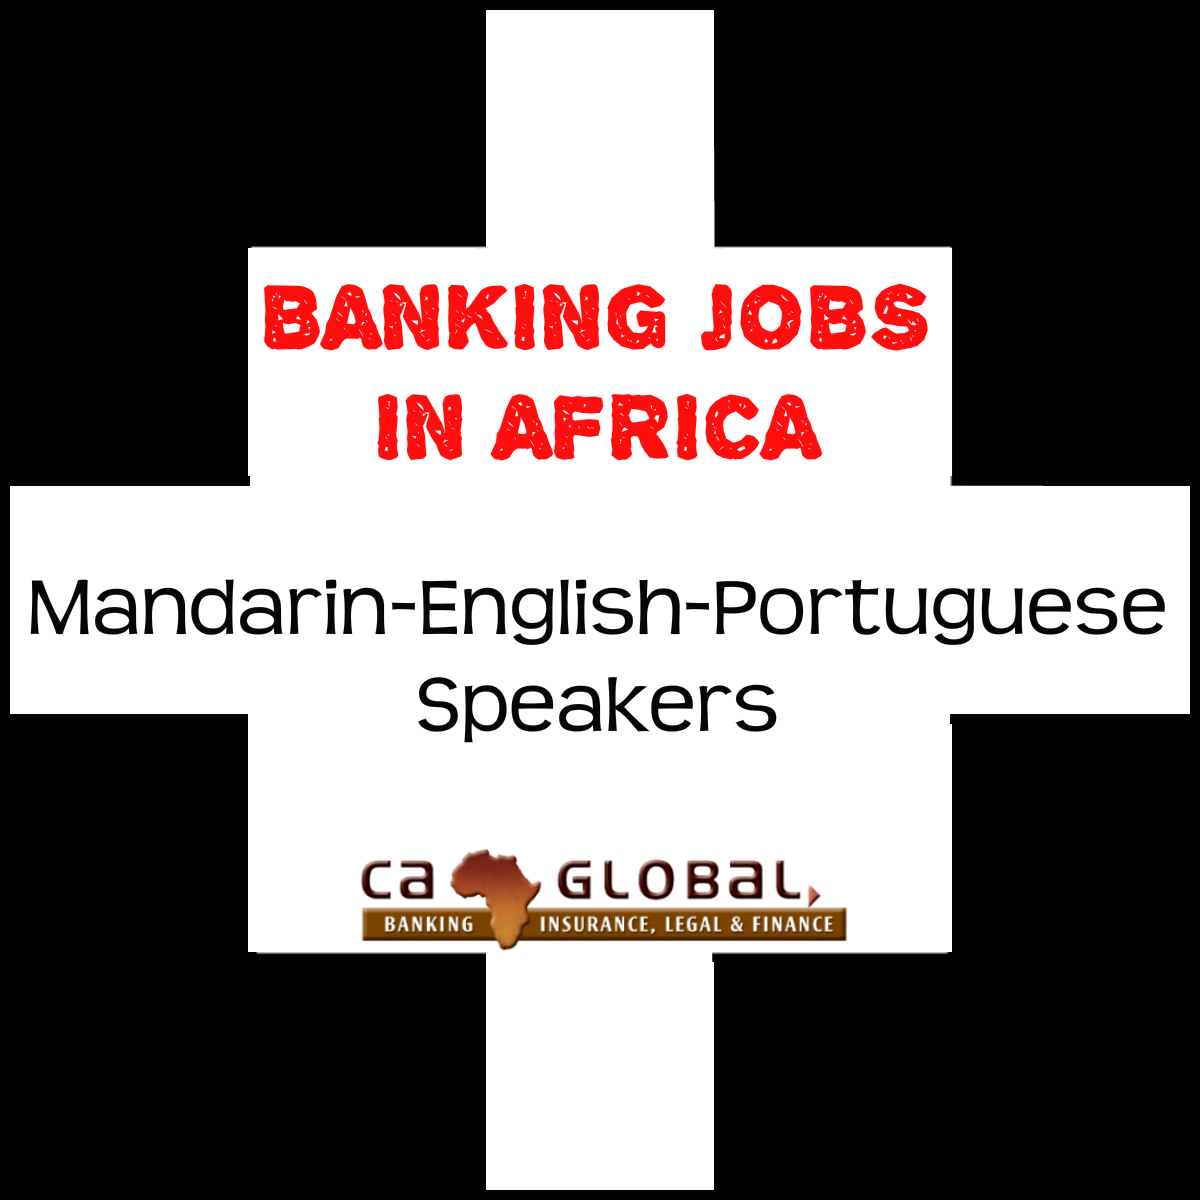 Banking Jobs in West Africa_CA Global